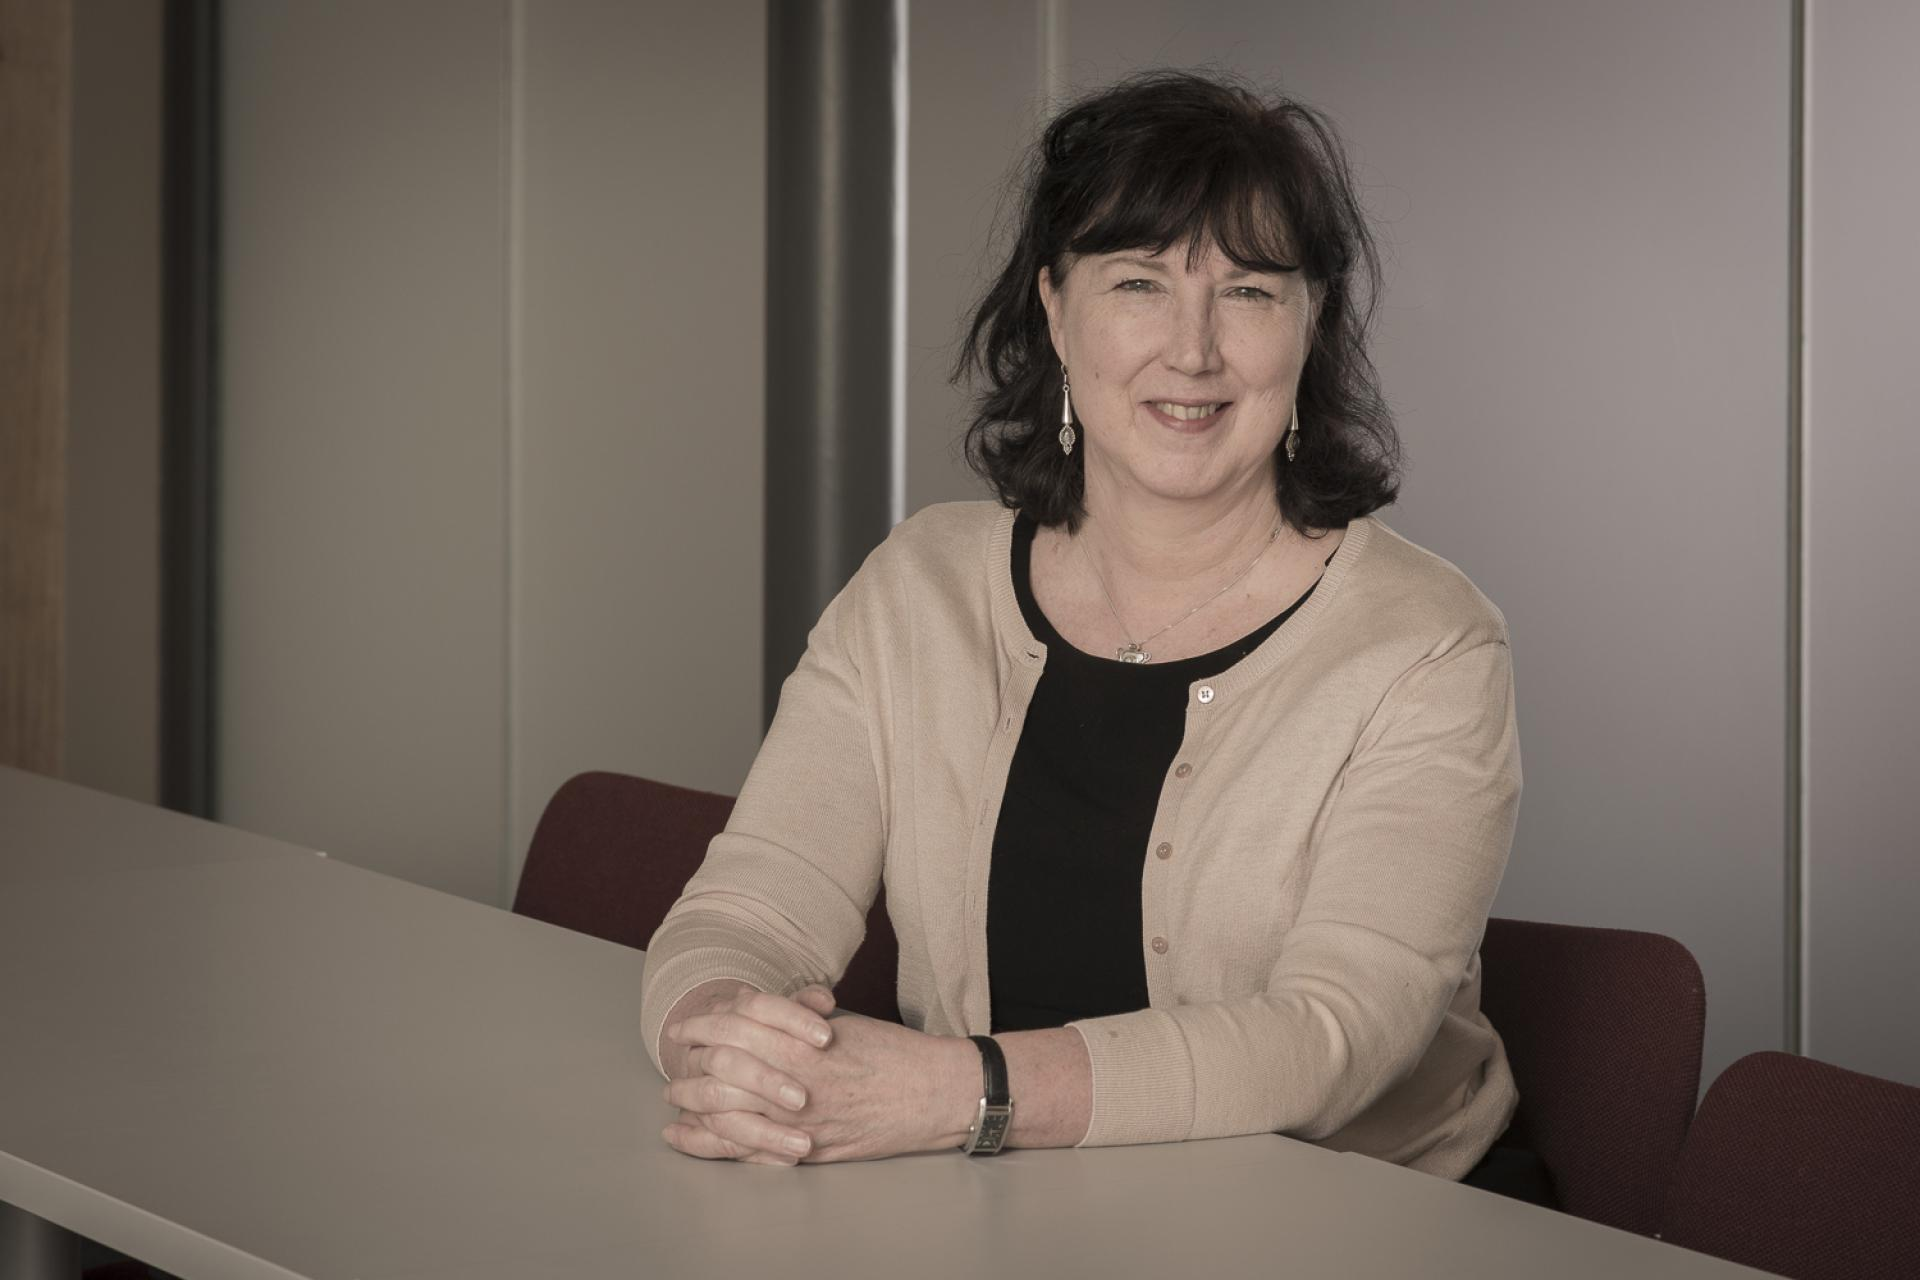 Professor Lesley McAra profile picture